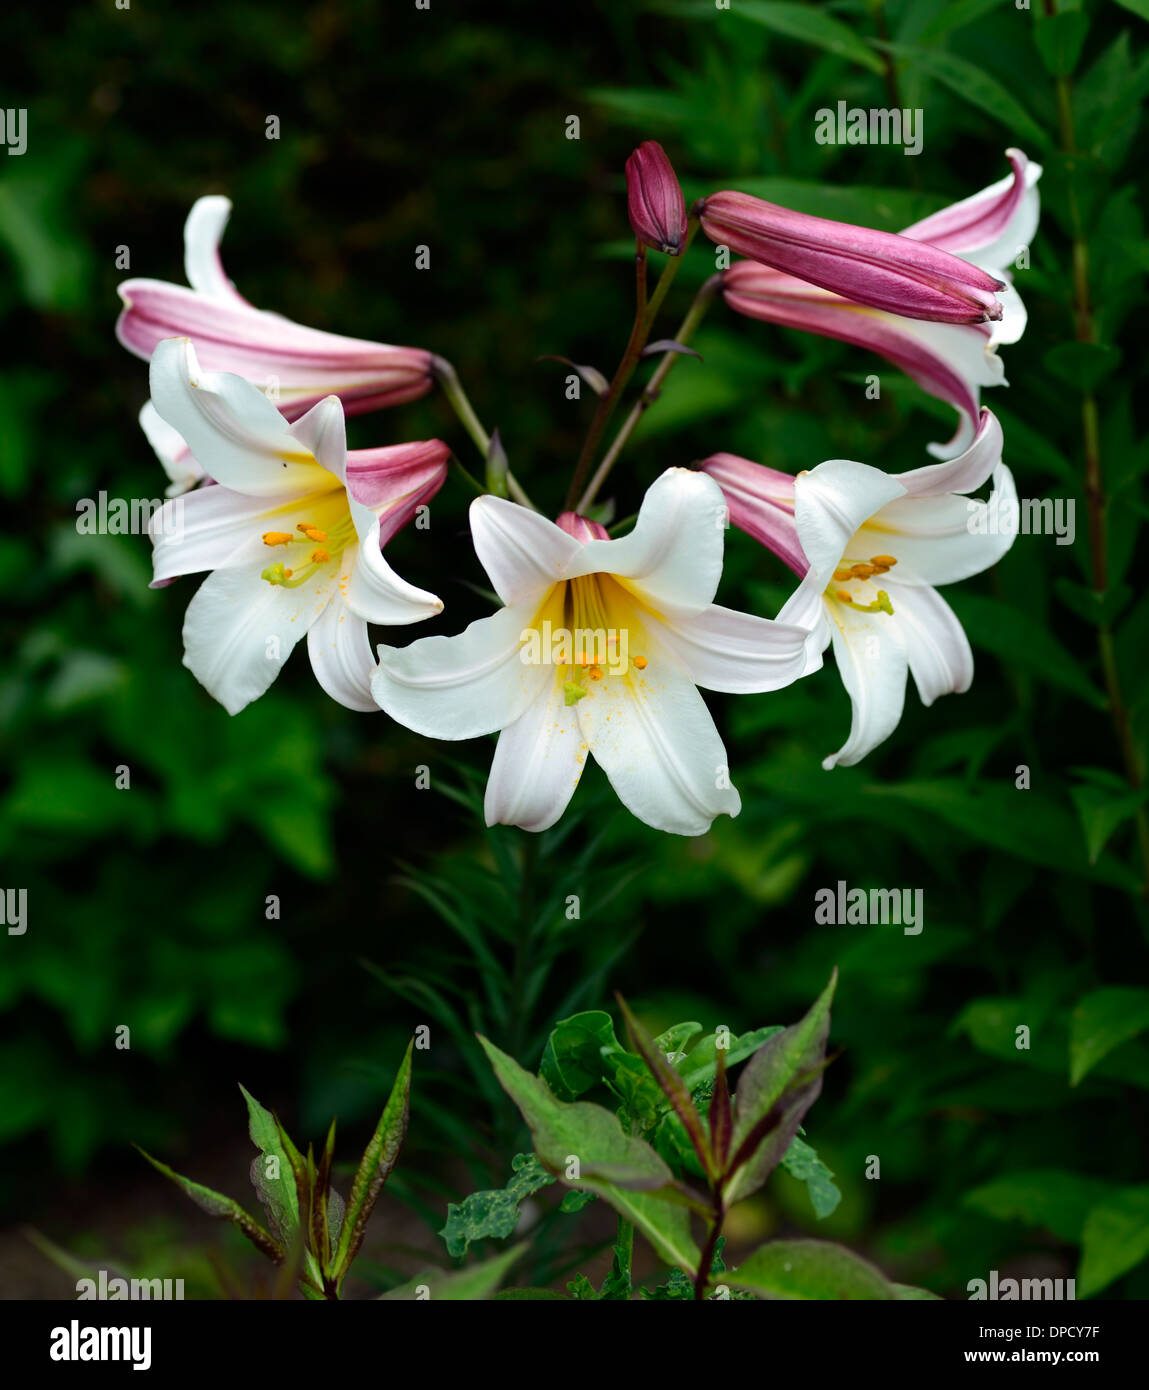 lilium regale regal lily lilies white trumpet flower flowers flowering blooms scented scents fragrant fragrance - Stock Image